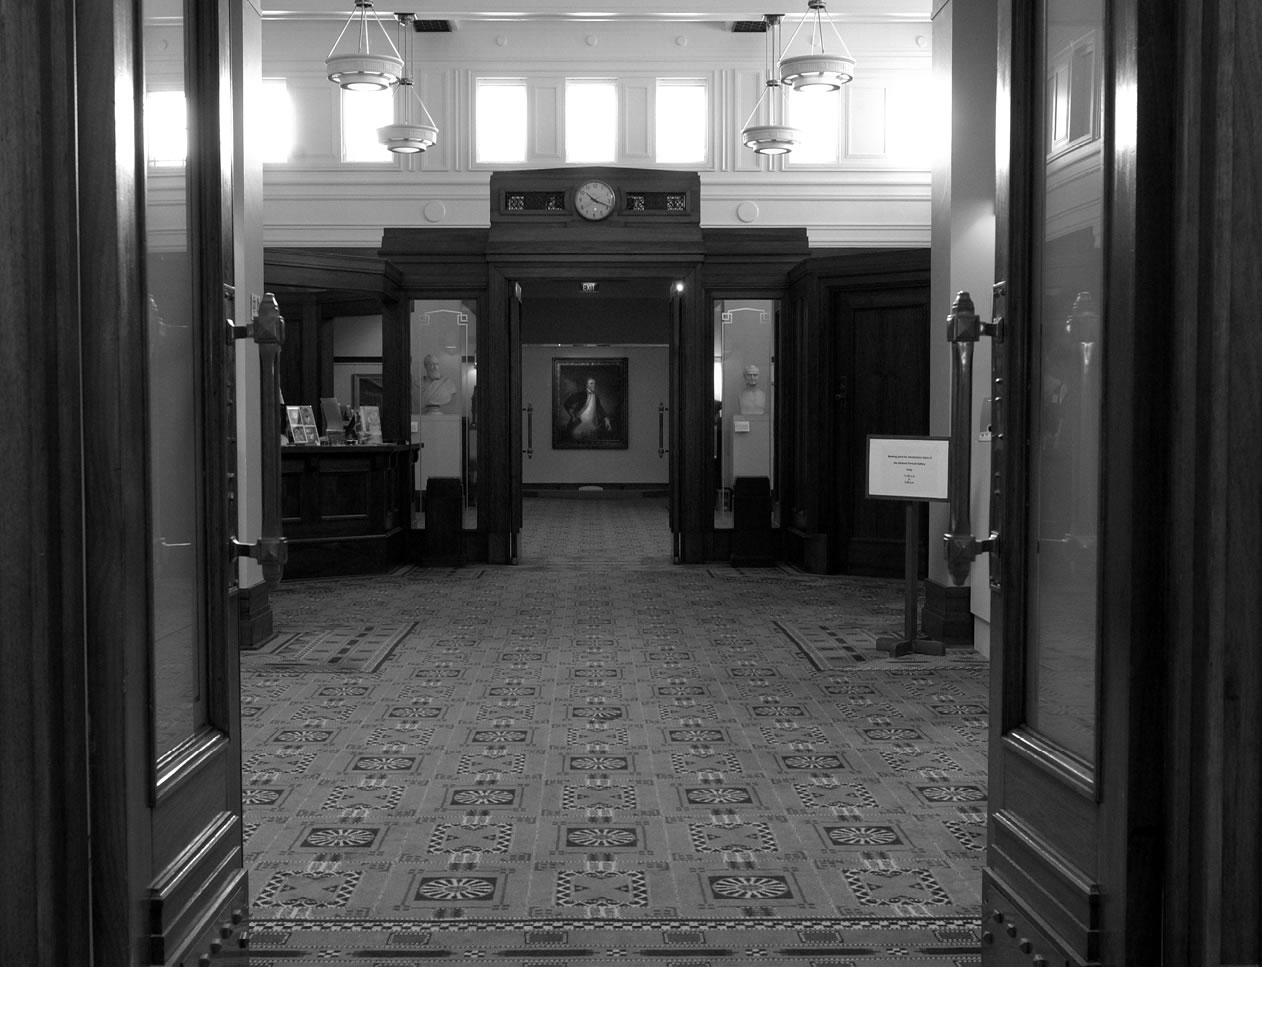 A black and white image of the former Parliamentary Library space on the main floor.